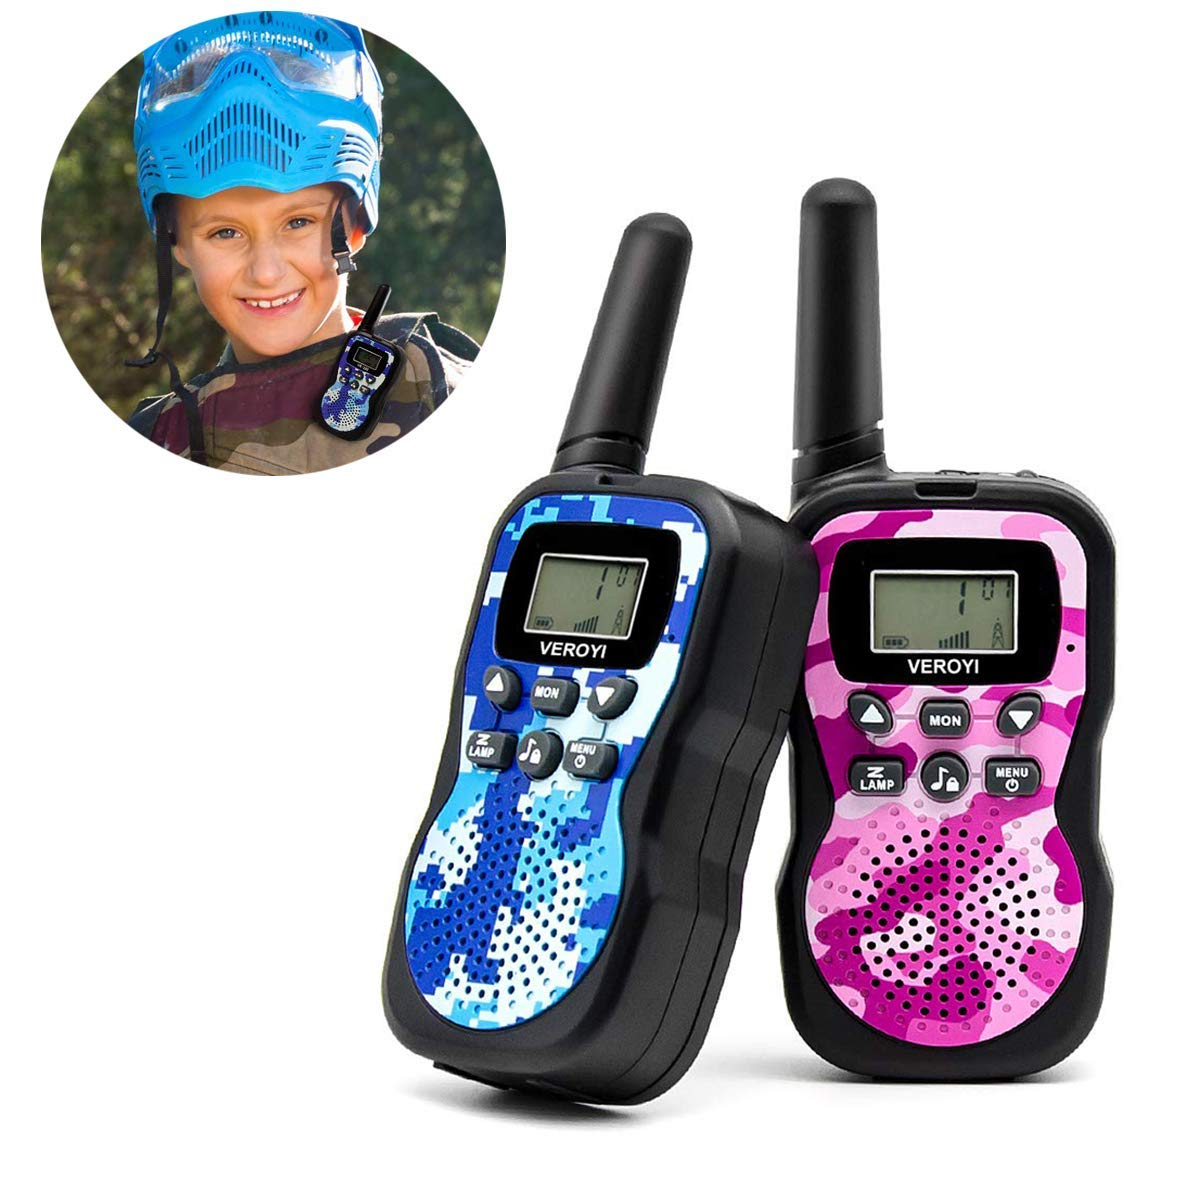 Pussan Fun Toys for 5-10 Year Old Girls Kids Walkie Talkies, 2 Miles Long Distance Walkie Talkies, Outdoor Games, Camping Gear Birthday Gift for Boys and Adlut